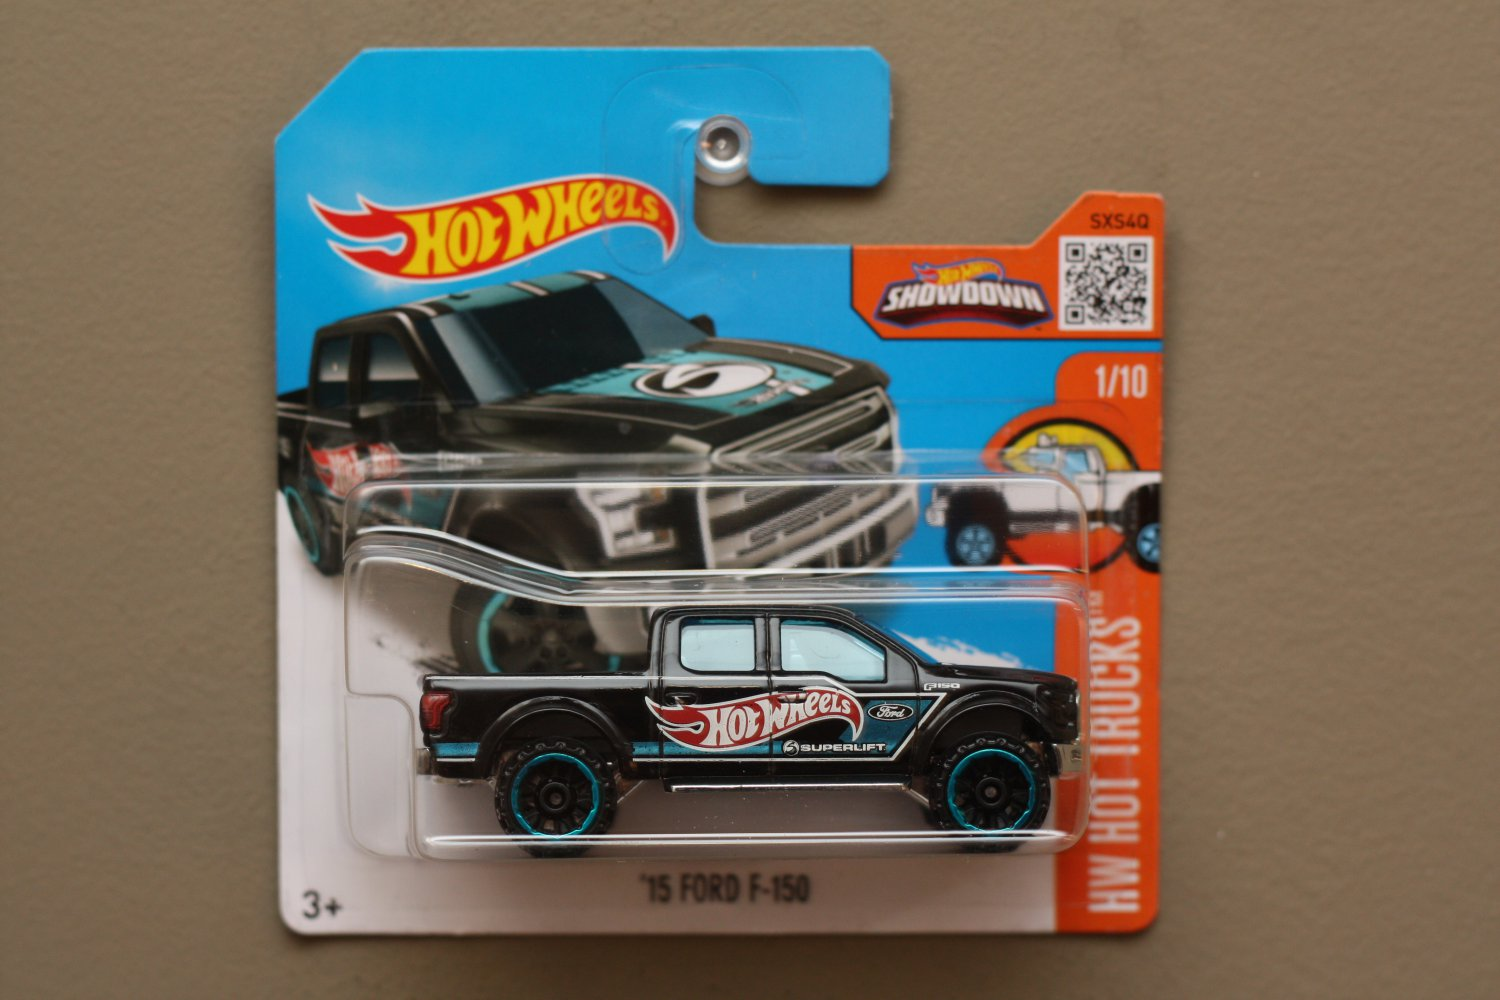 Hot wheels 2016 hw hot trucks 39 15 ford f 150 black for 9 salon hot wheels 2016